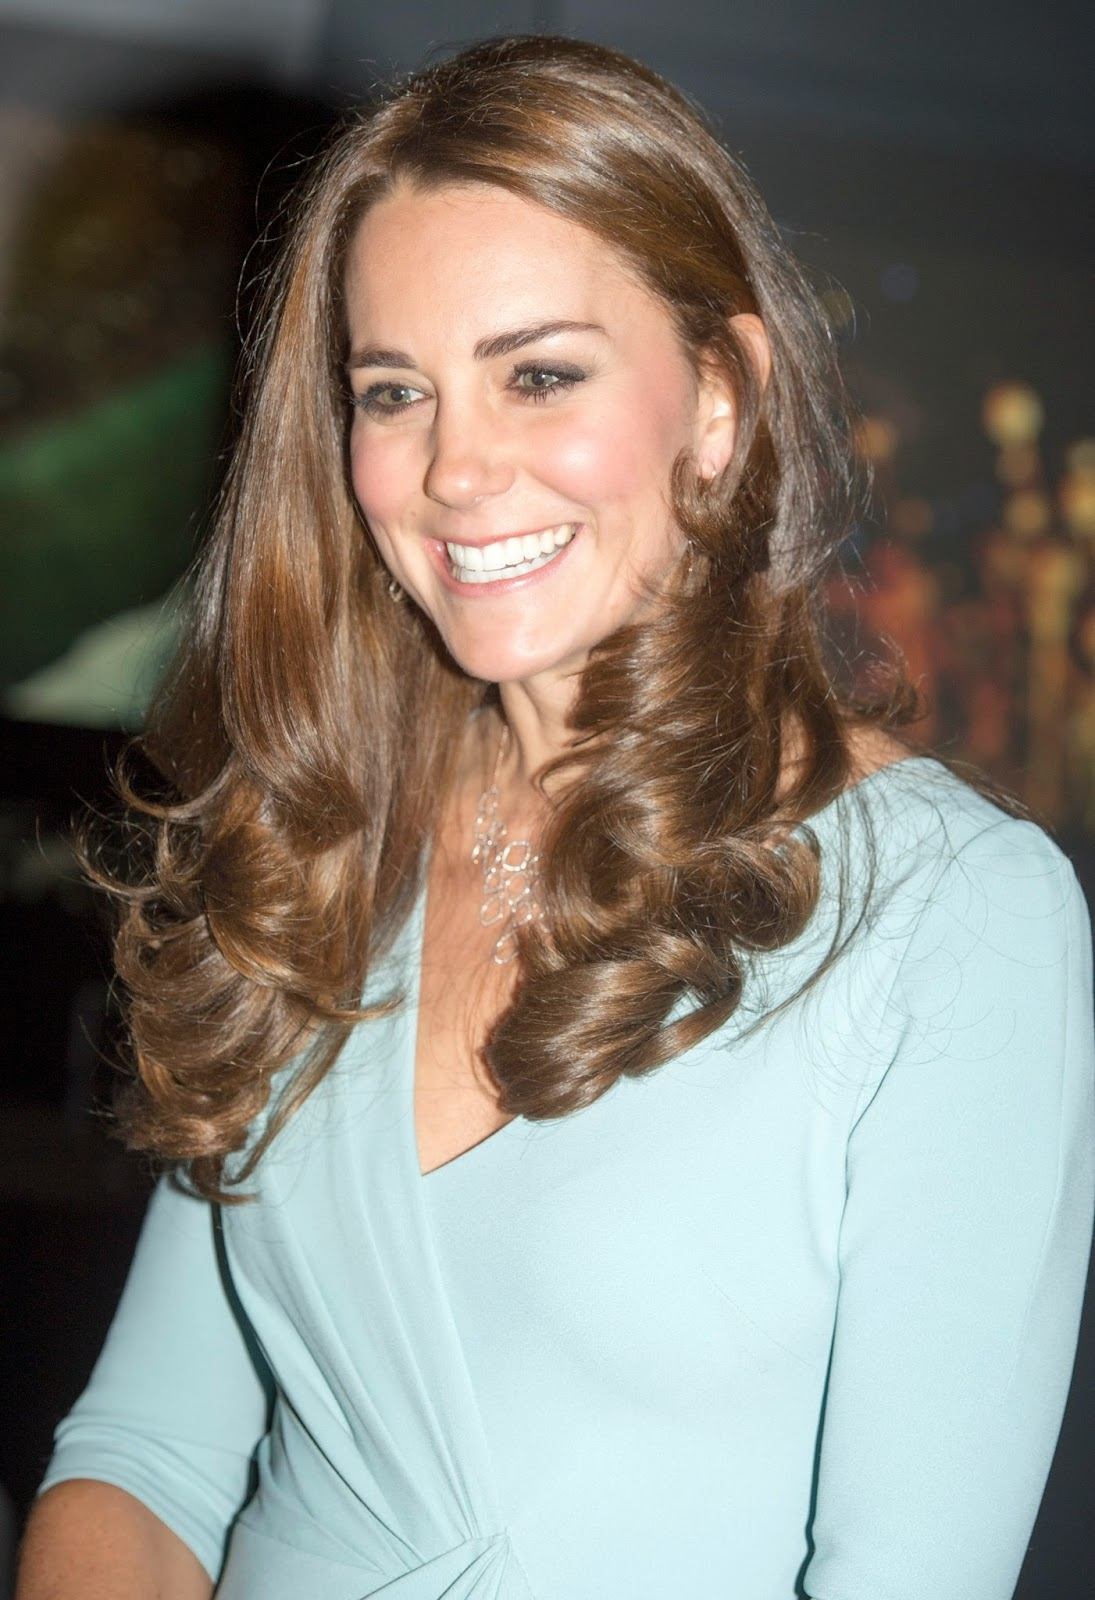 Duquesa de Cambridge, Kate Middleton, Look premios Wildlife Photographer of the Year 2014, Joyas Monica Vinader, Jewellery Collection, Style, Moda, Complementos, Looks